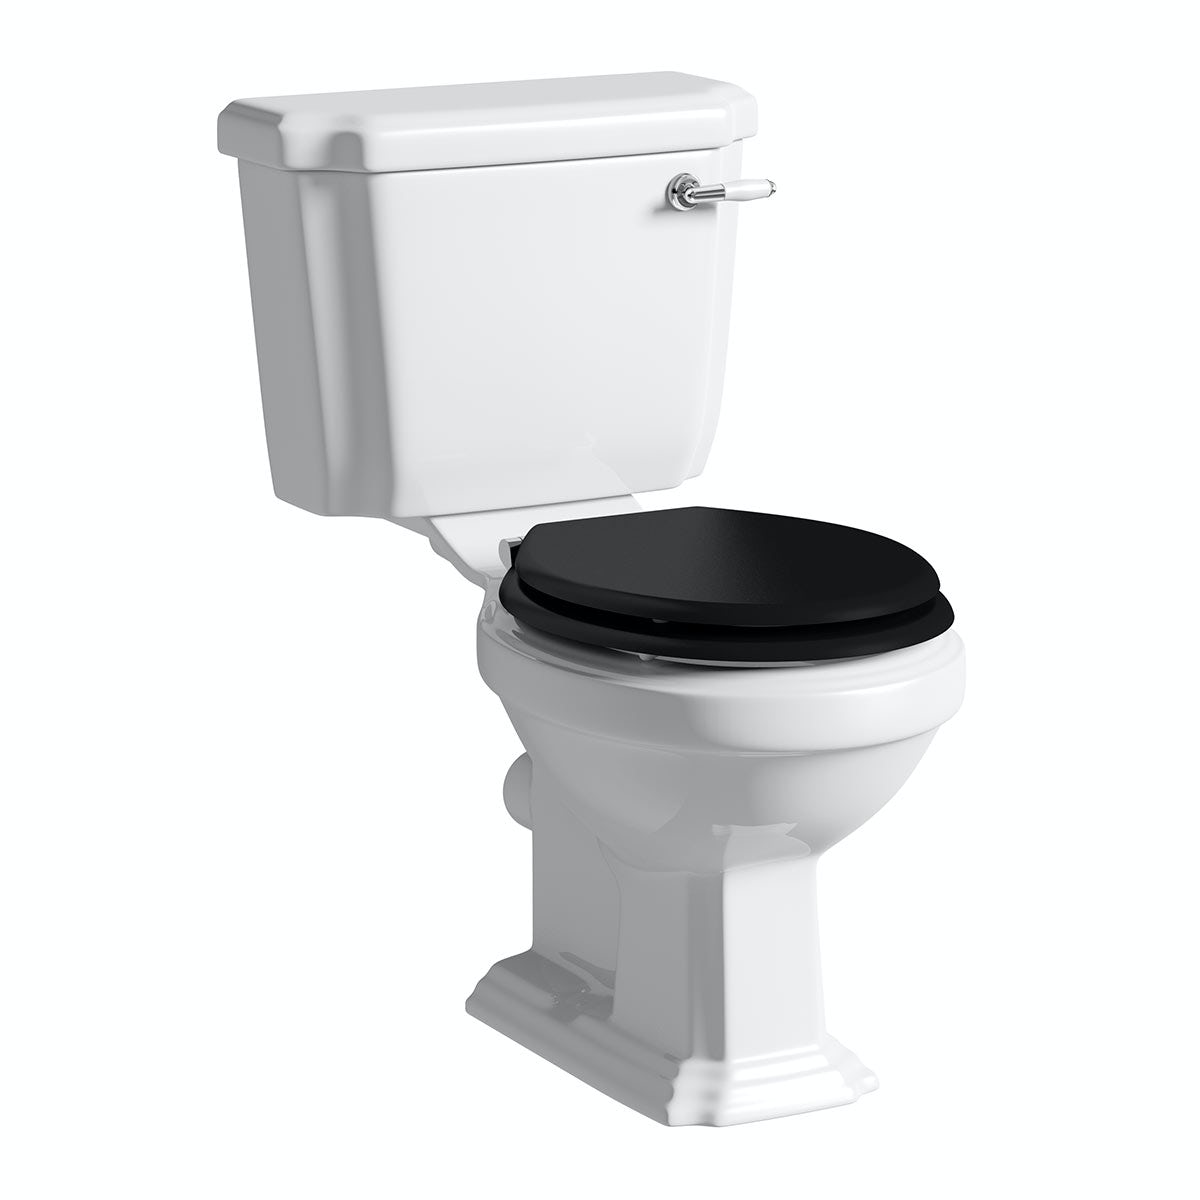 The Bath Co. Dulwich close coupled toilet with wooden toilet seat black with pan connector